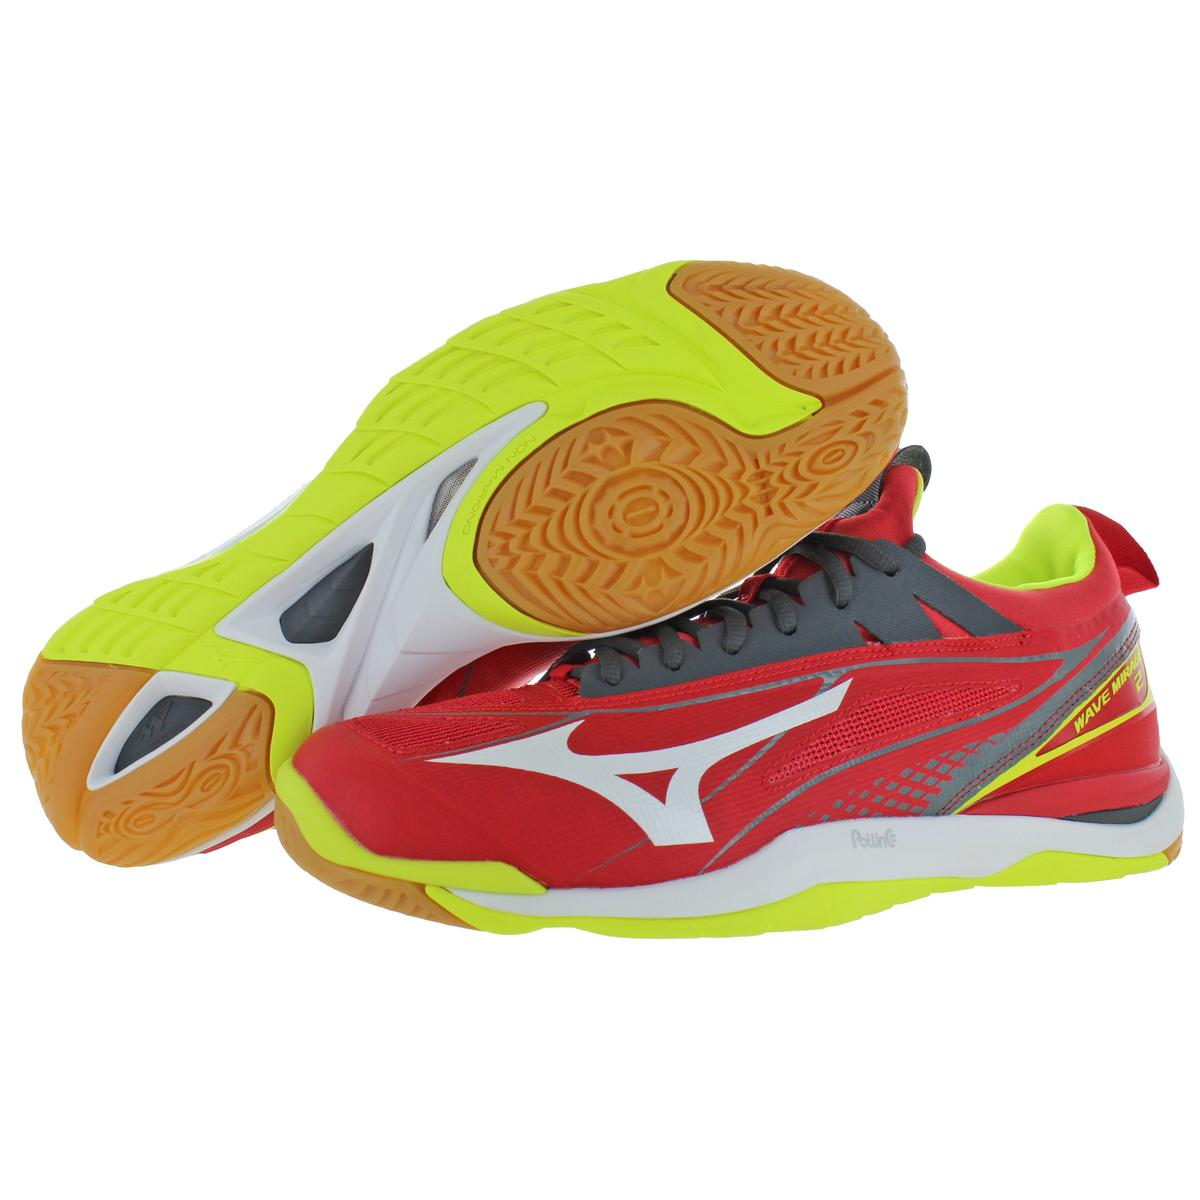 Mizuno-Mens-Wave-Mirage-2-Non-Marking-Handball-Lace-Up-Sneakers-Shoes-BHFO-9072 thumbnail 9